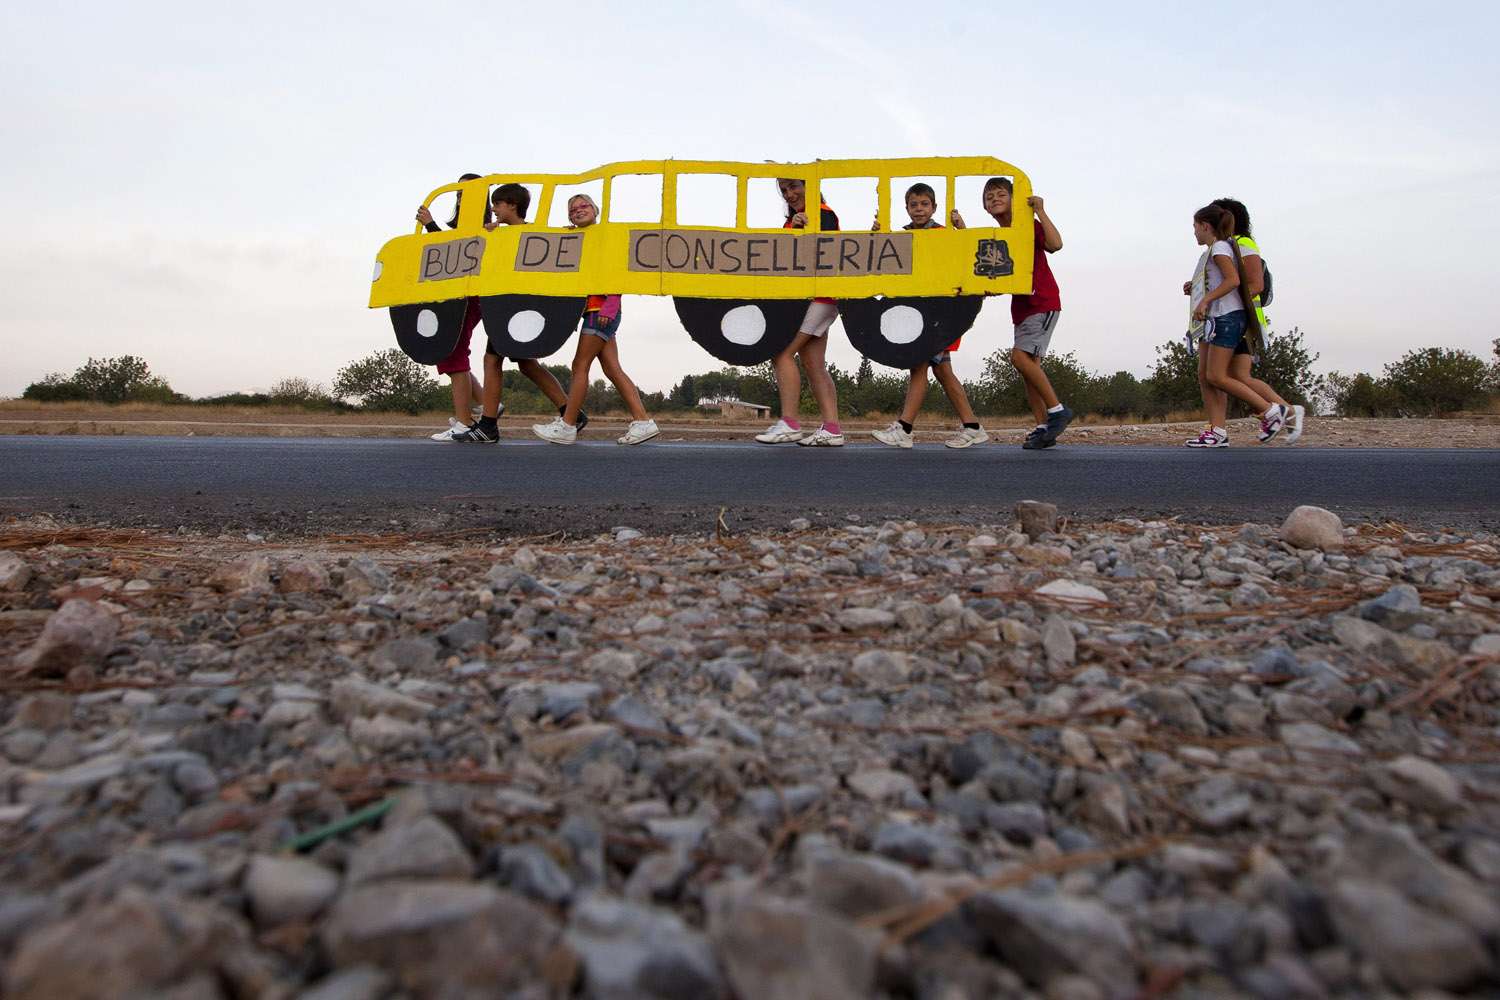 Sept. 17, 2012. Children walk with a cartoon school bus during a protest against the Spanish government's cuts on school transport, in Pobla de Vallbona, eastern Spain.